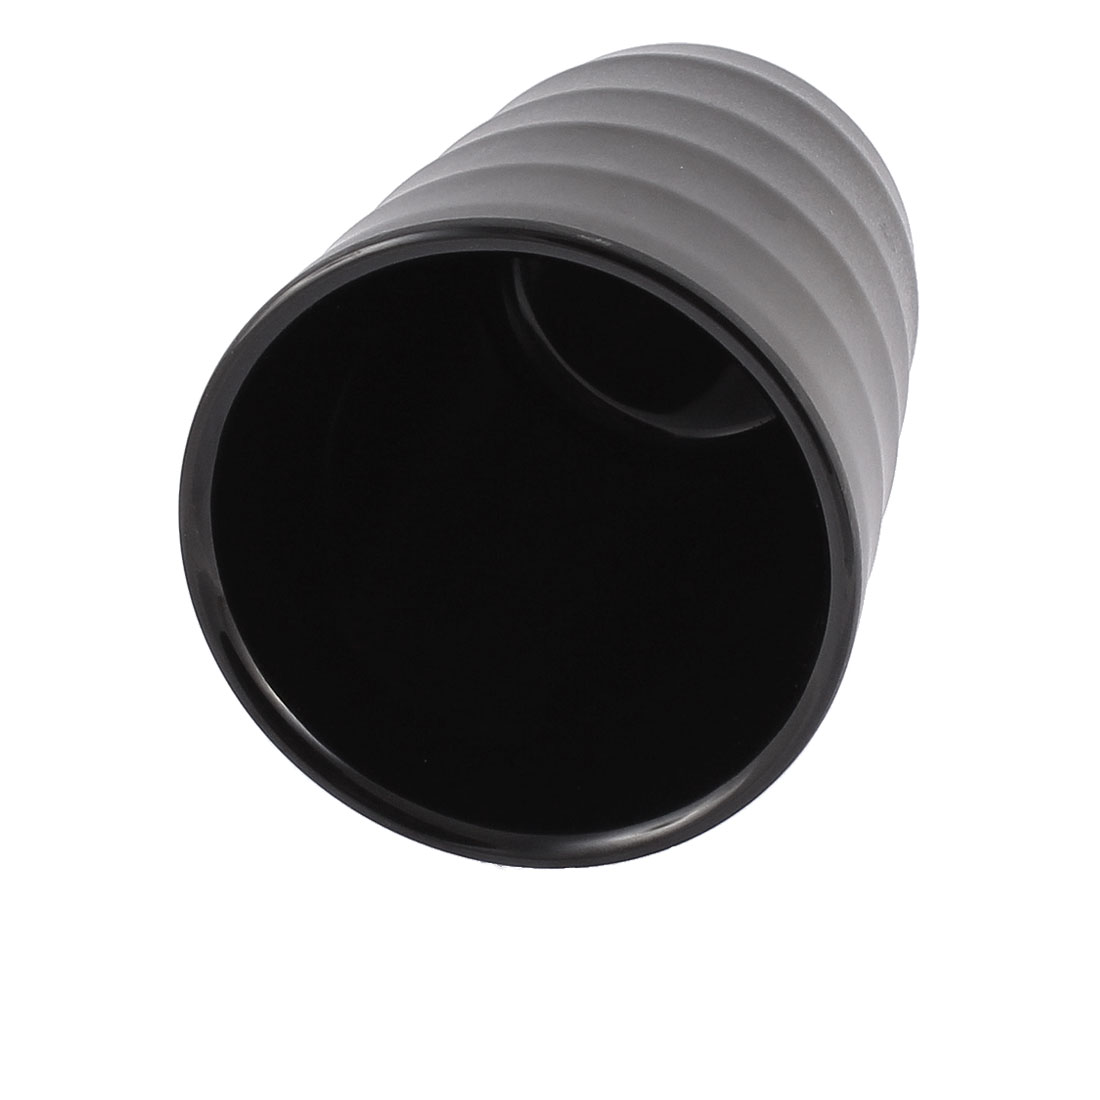 Home Restaurant Plastic Cylinder Shaped Water Tea Drinking Cup Black